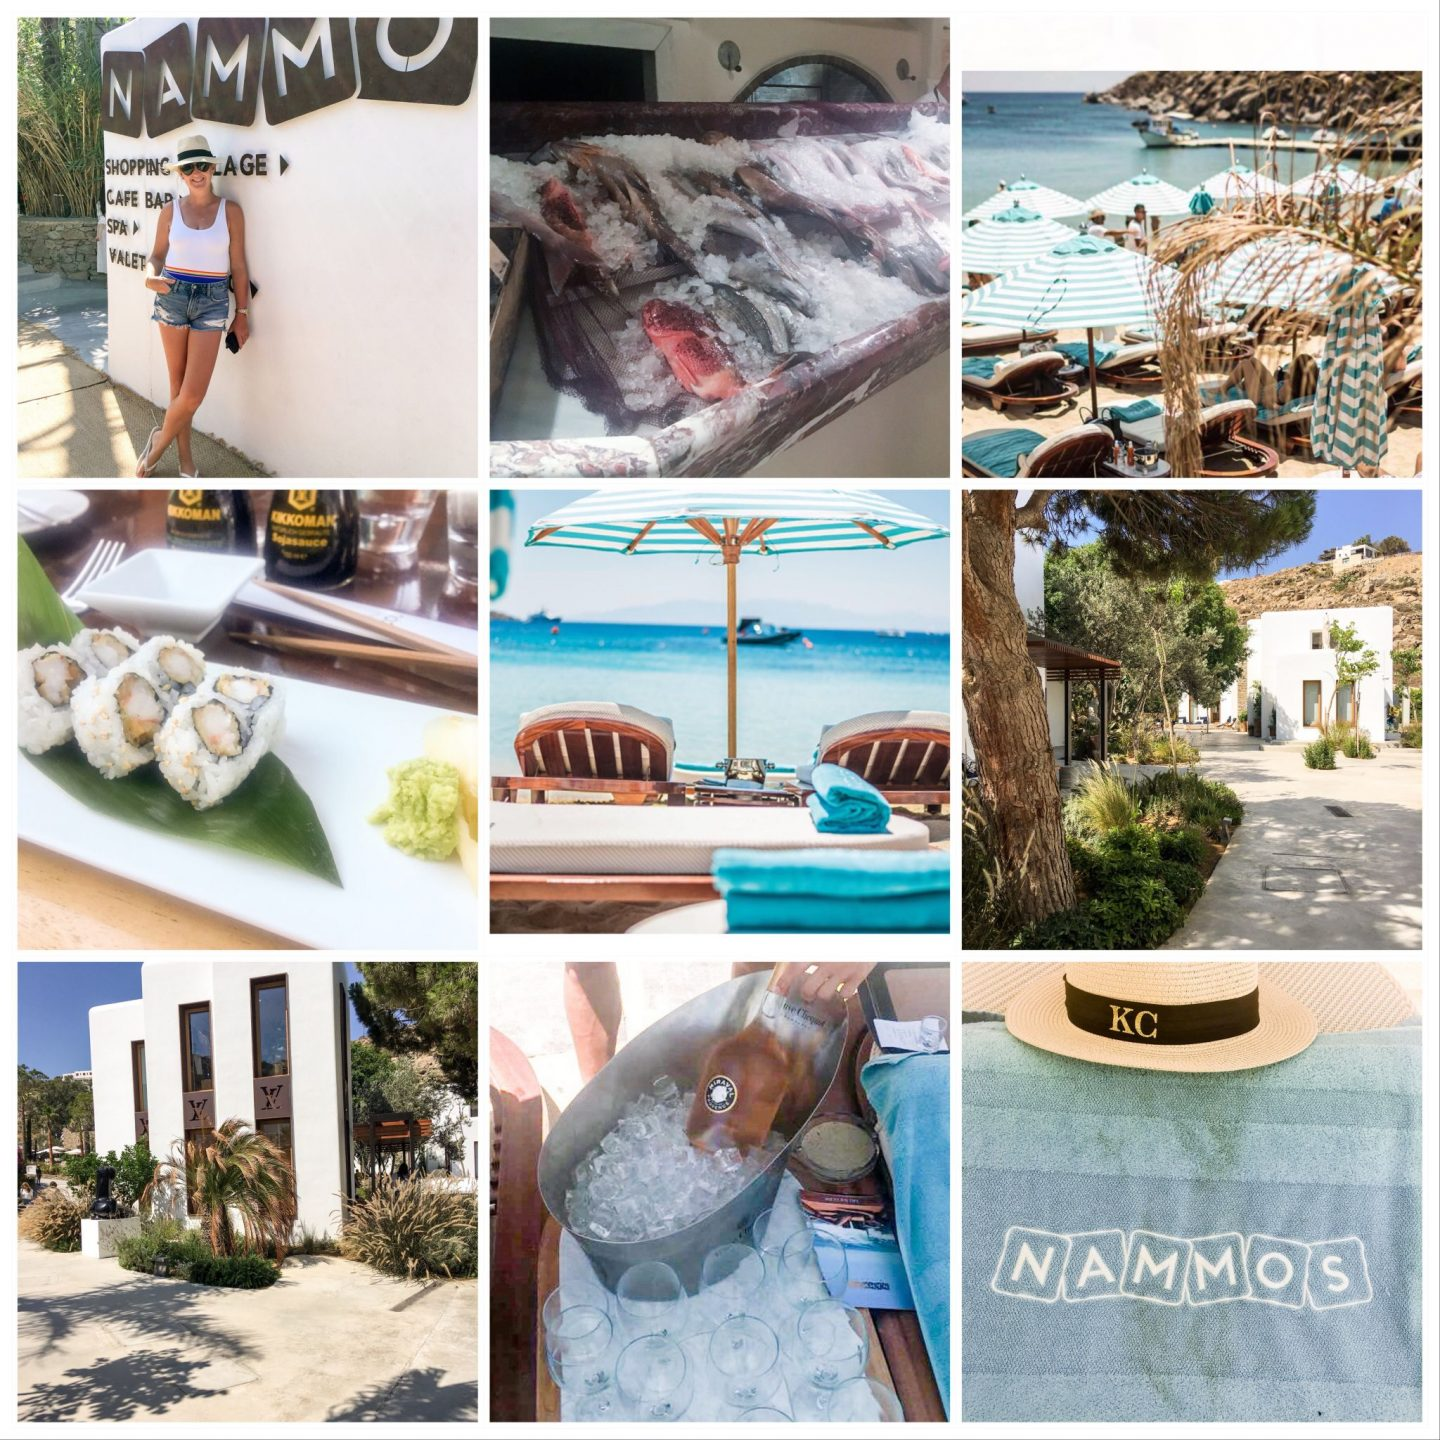 NAMMOS VILLAGE Beach Clubs in Mykonos